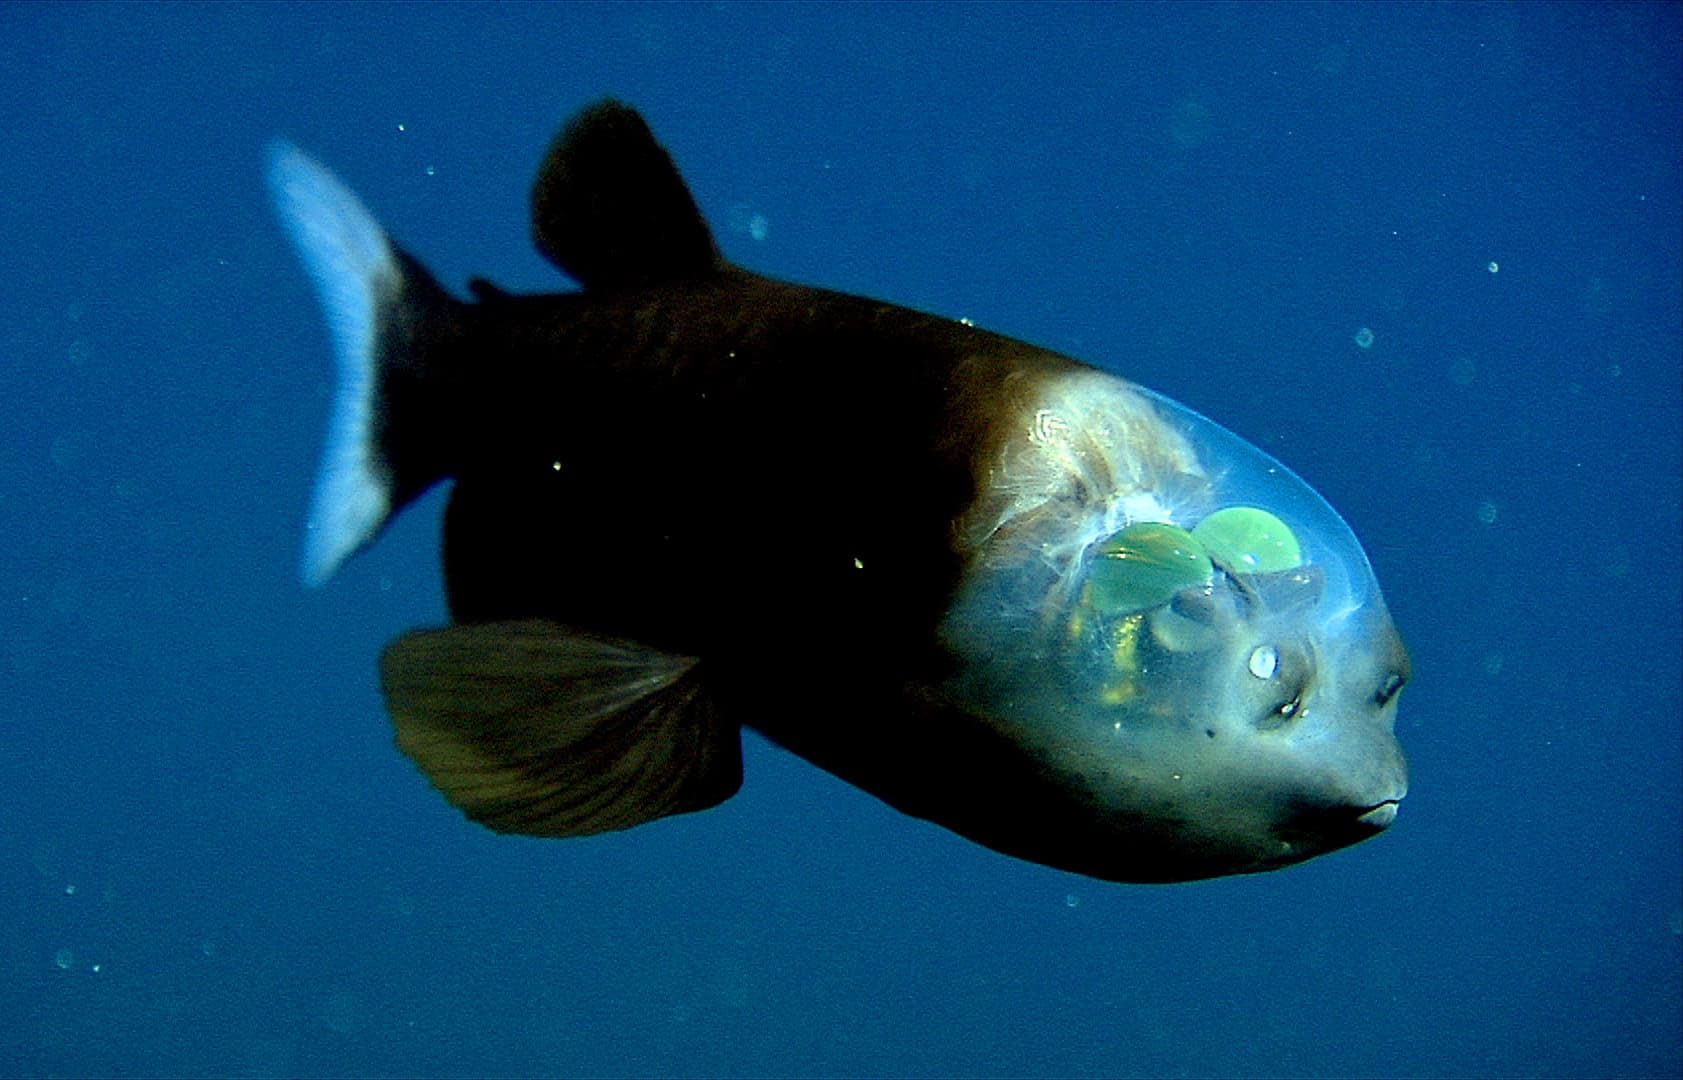 Barreleye fish, Macropinna microstoma